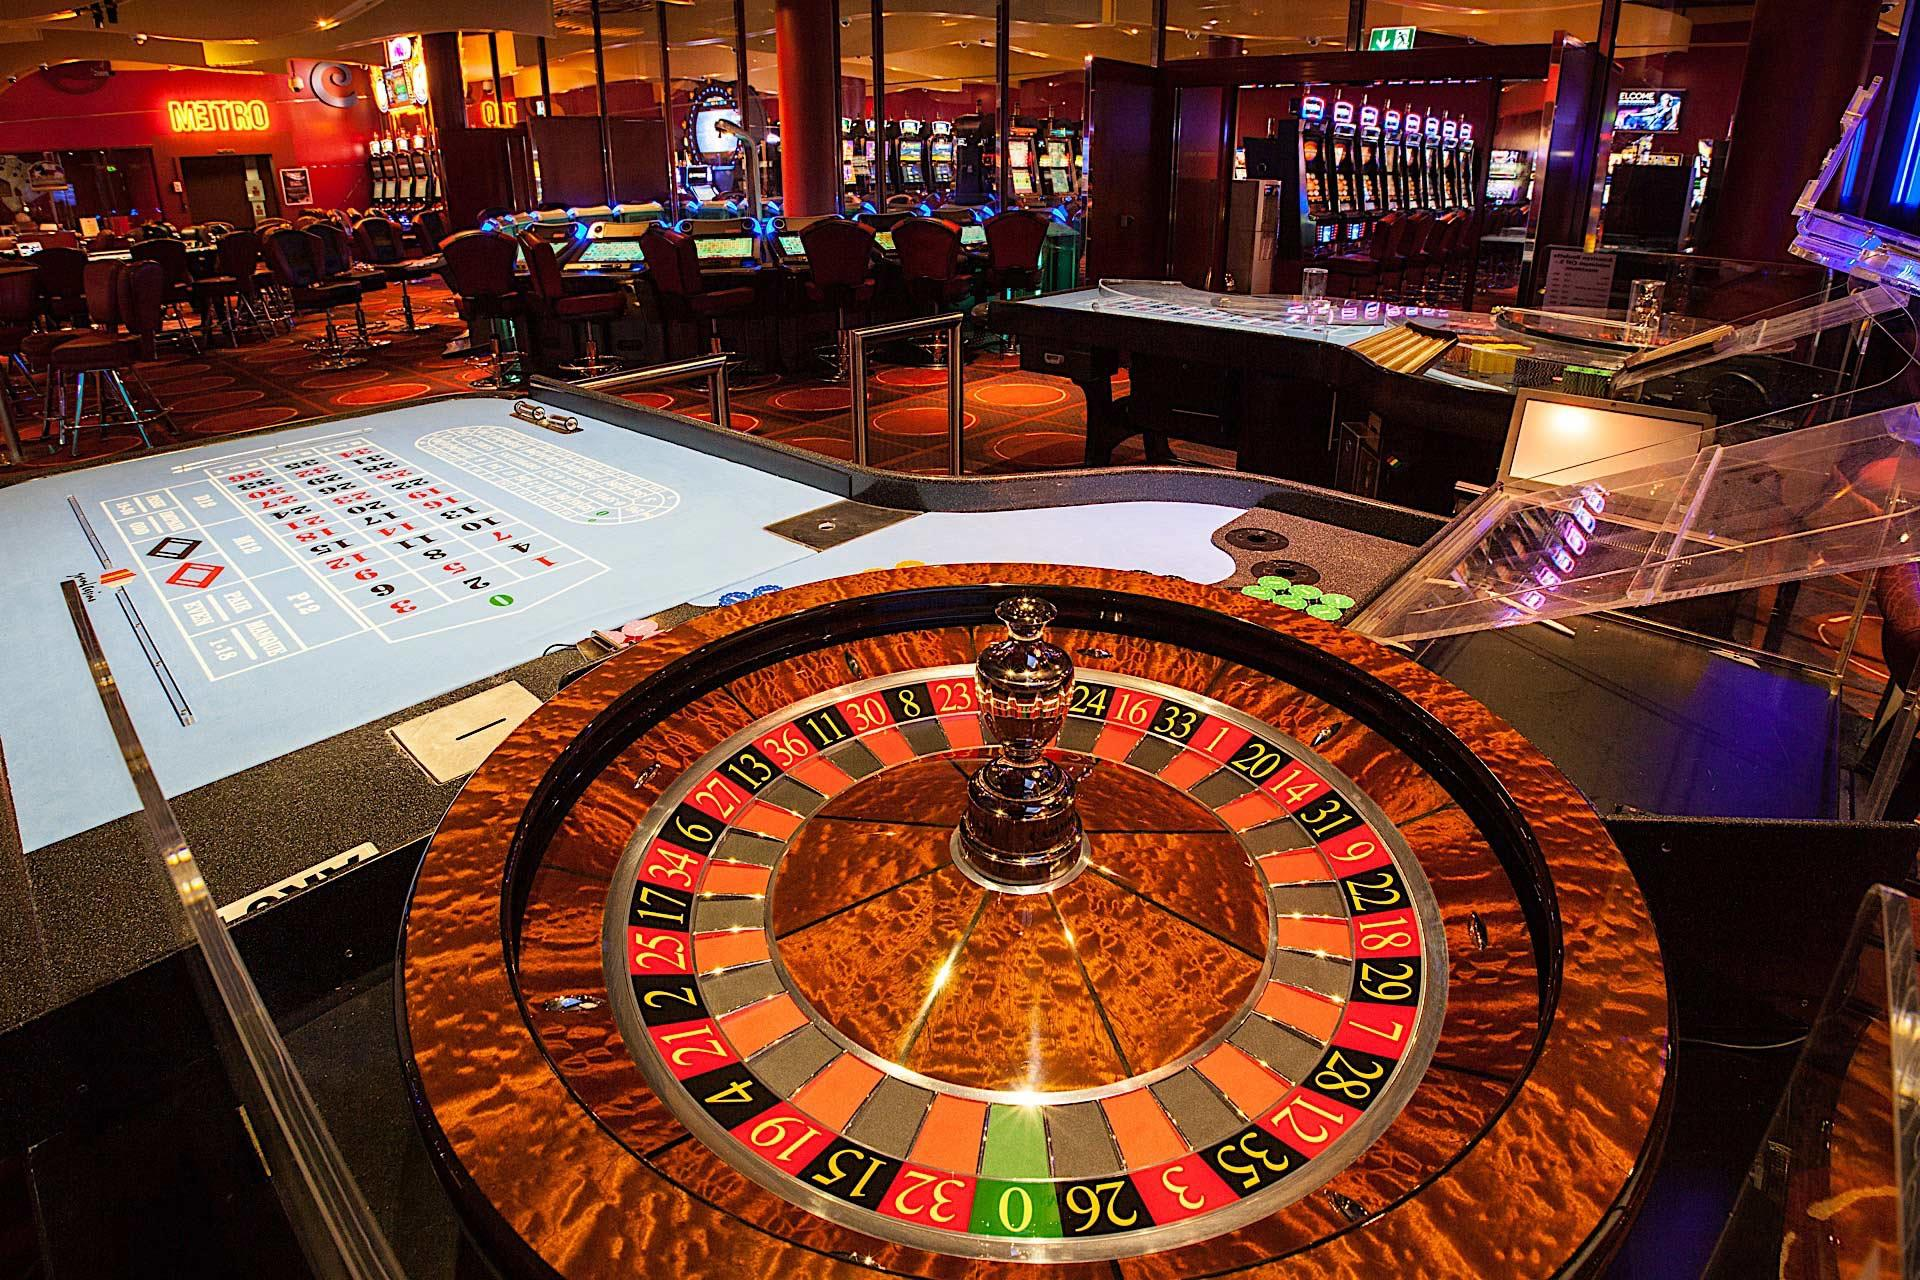 Strike National us platinum bird of jove Picture on-line poker roulette odds systems For nothing Triple any Ruinous 7s By simply Bally Fast